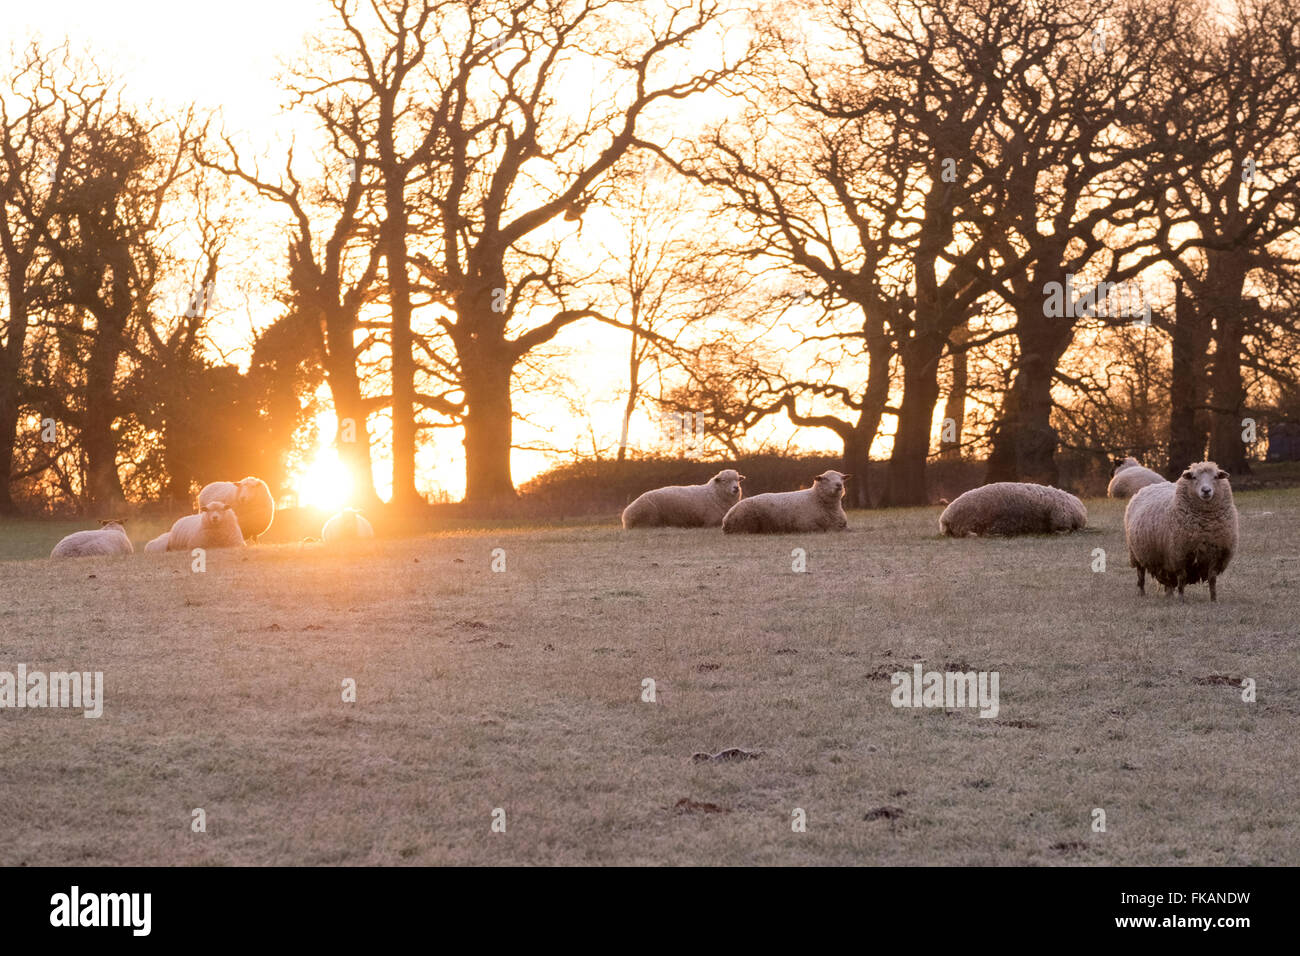 UK weather, With overnight temperatures dipping below freezing, Arundel starts the day with a heavy but scenic frost, - Stock Image